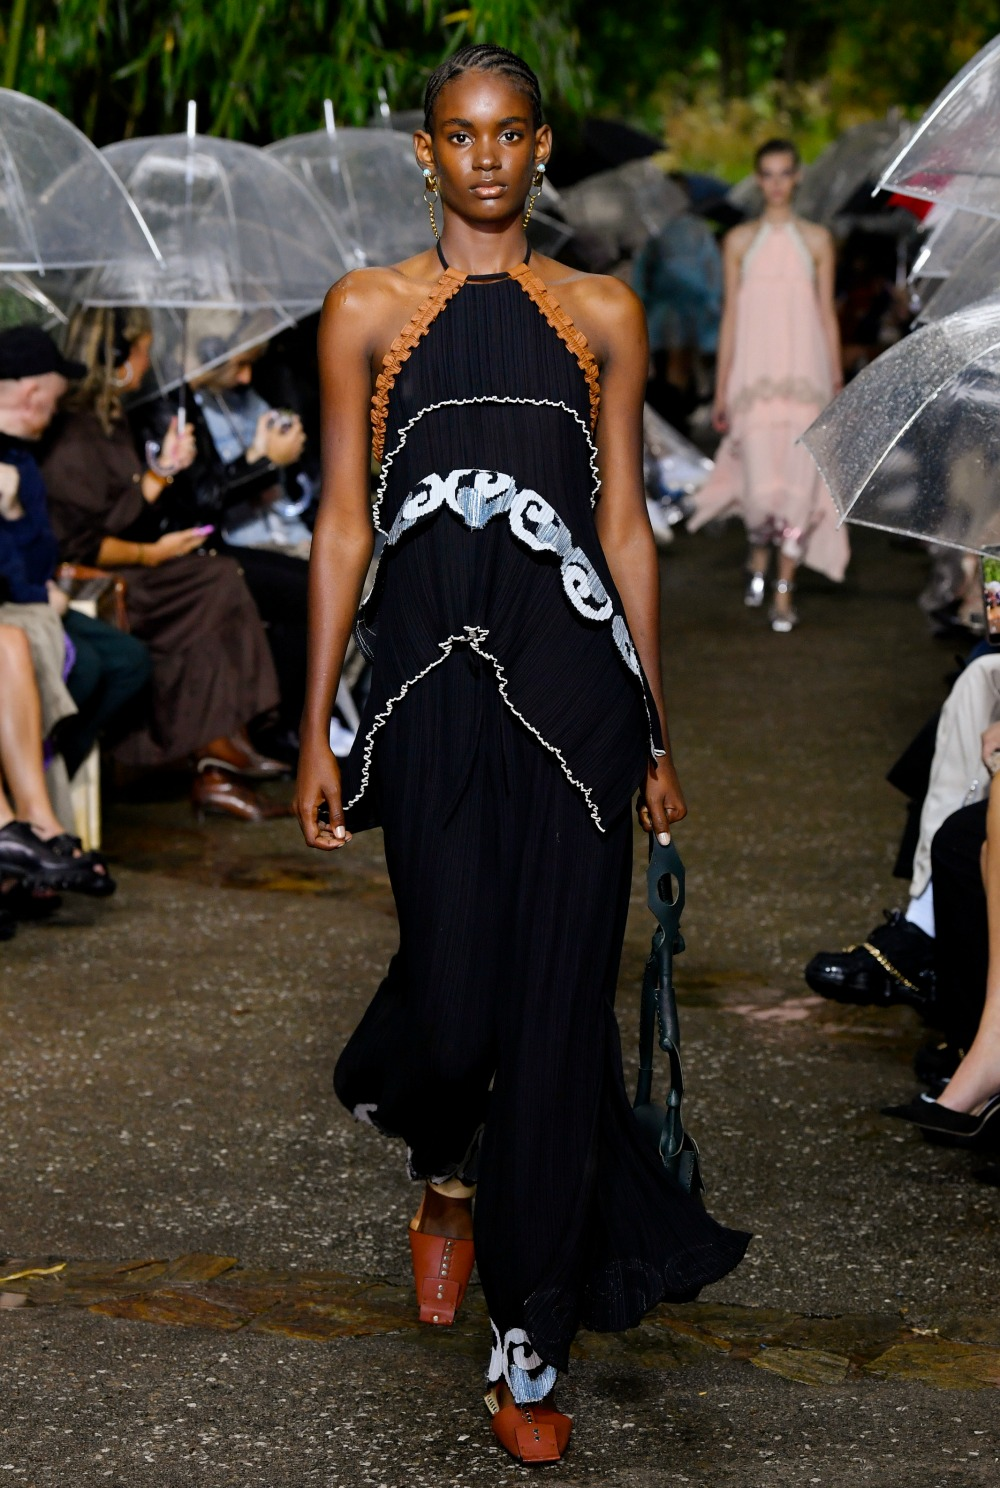 Lanvin Spring 2020 Collection Runway at Paris Fashion Week I DreaminLacde.com #designerfashion #fashionweek #highfashion #Lanvin